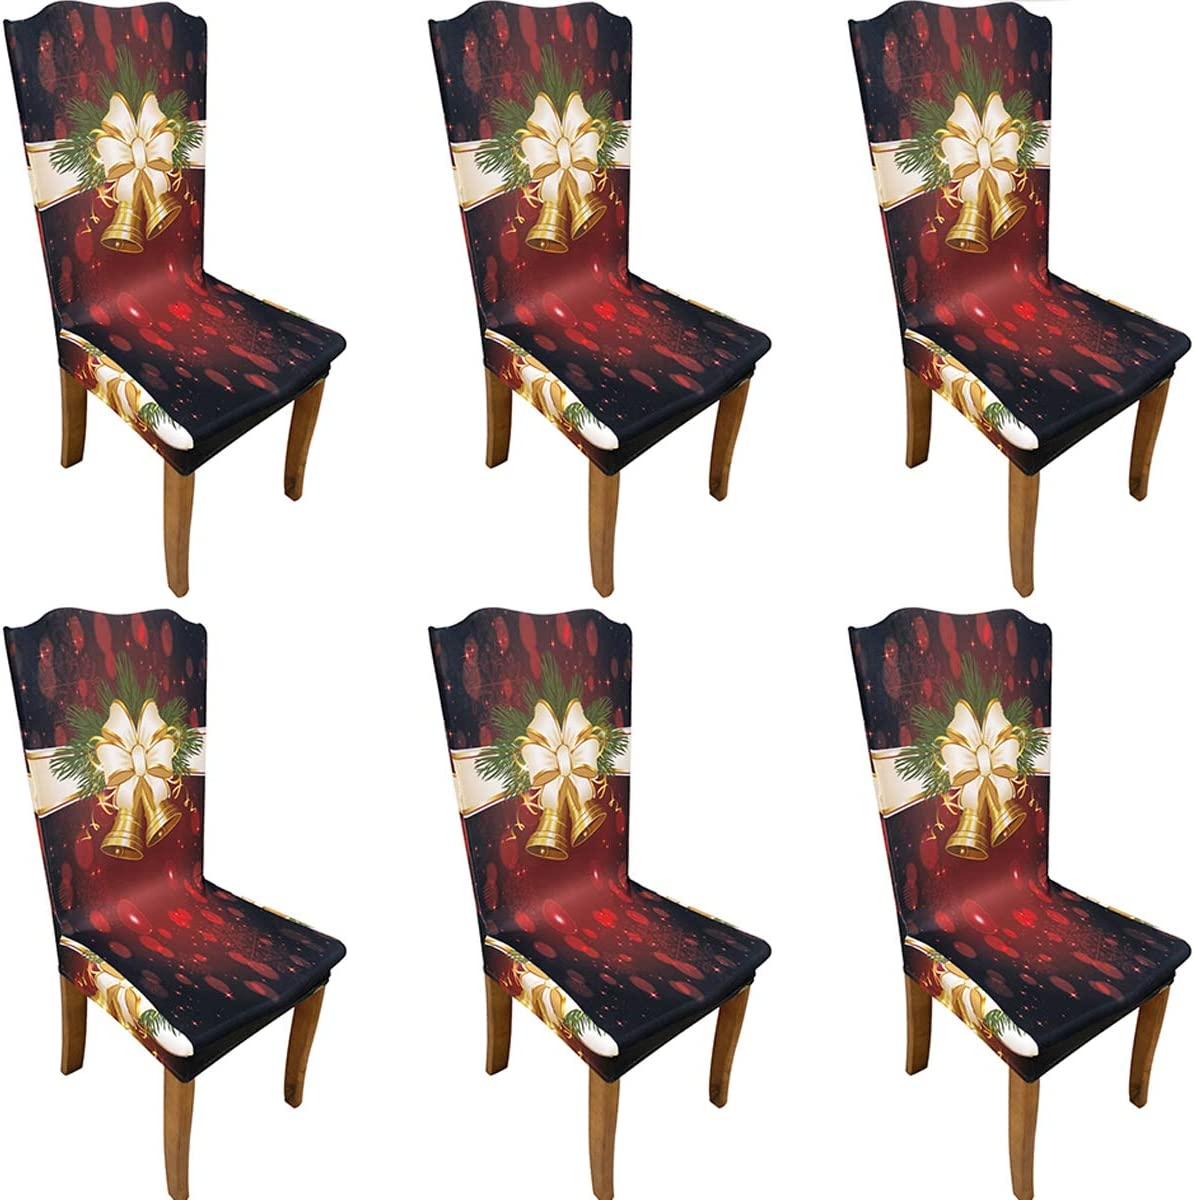 Christmas Dining Room Chair Covers Set Chairs Stretch Max 55% Boston Mall OFF of 6 Remo